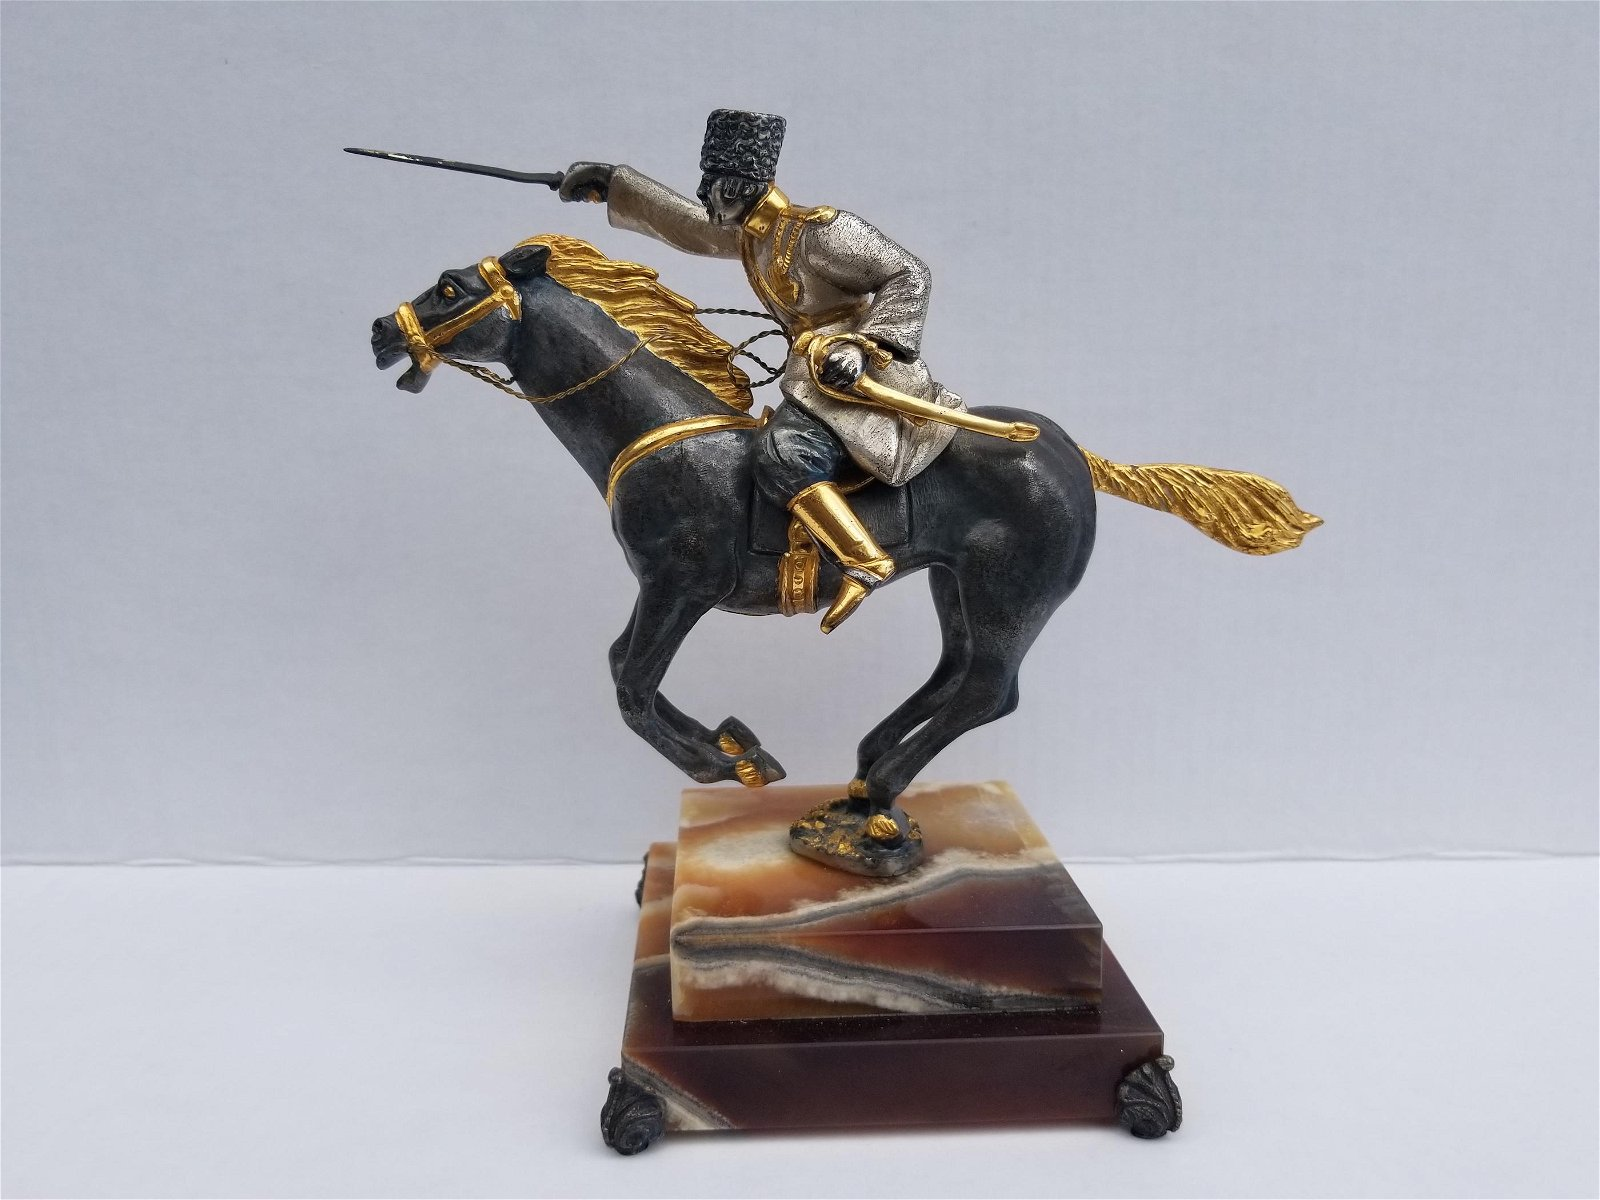 Iron statue on onyx, made in italy, limited edition